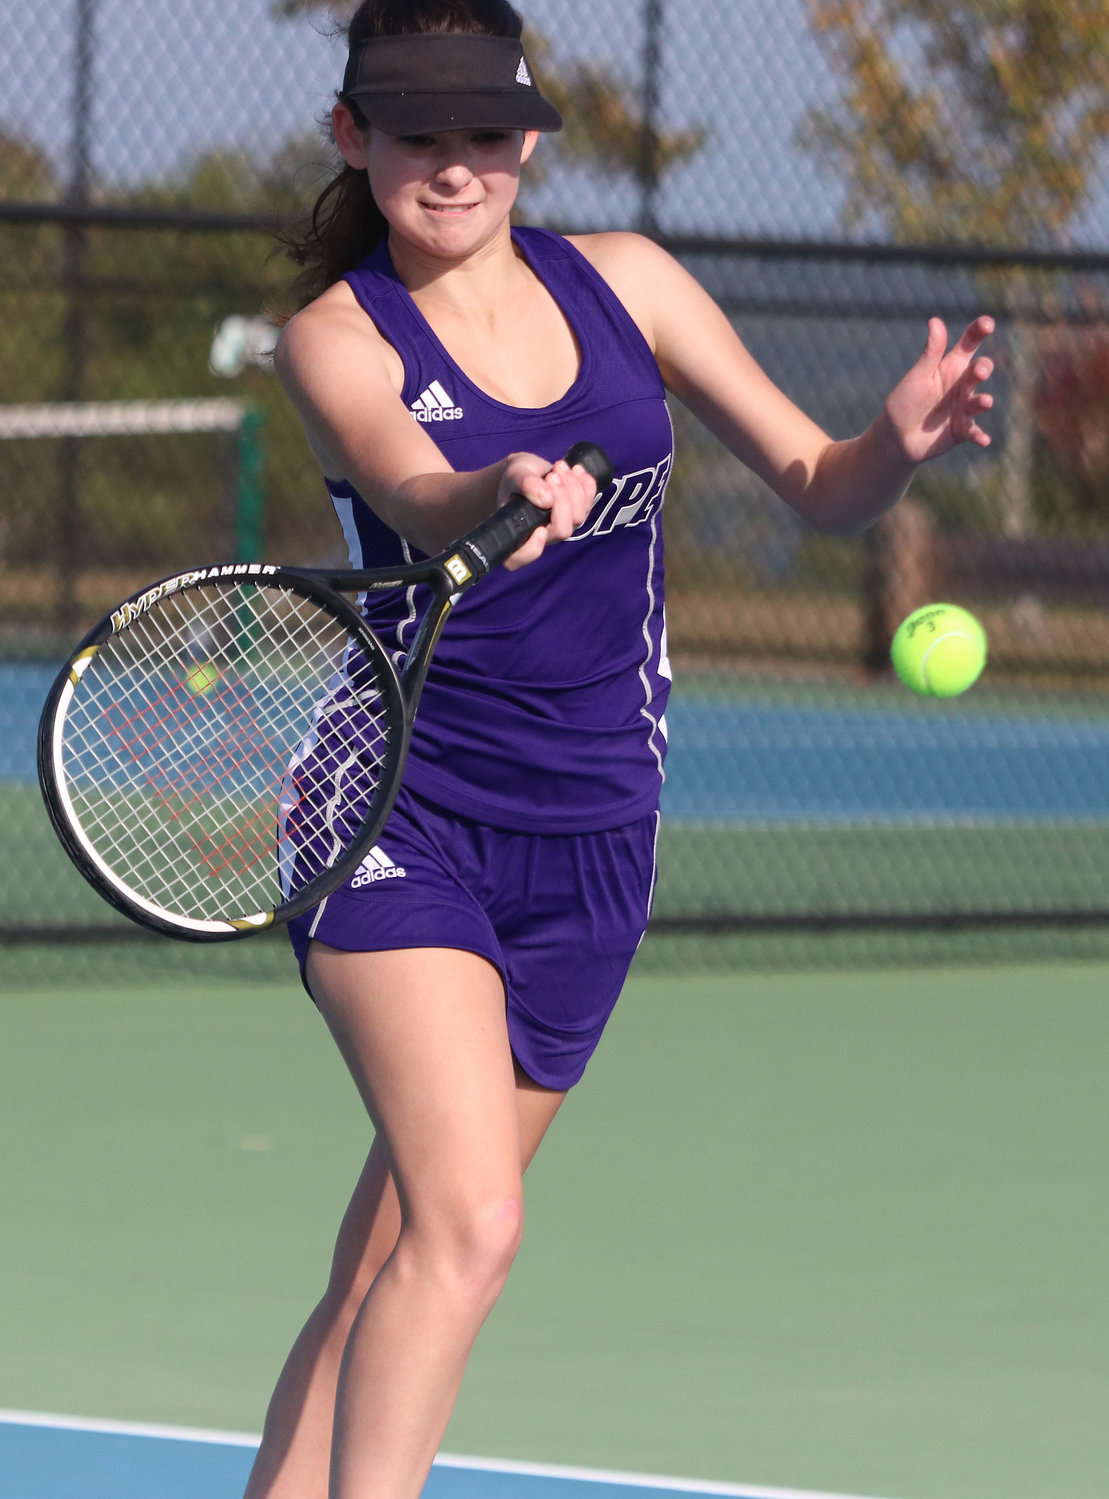 Sara Macedo lost her first match of the season to Portsmouth's Danielle Mazur in two sets.